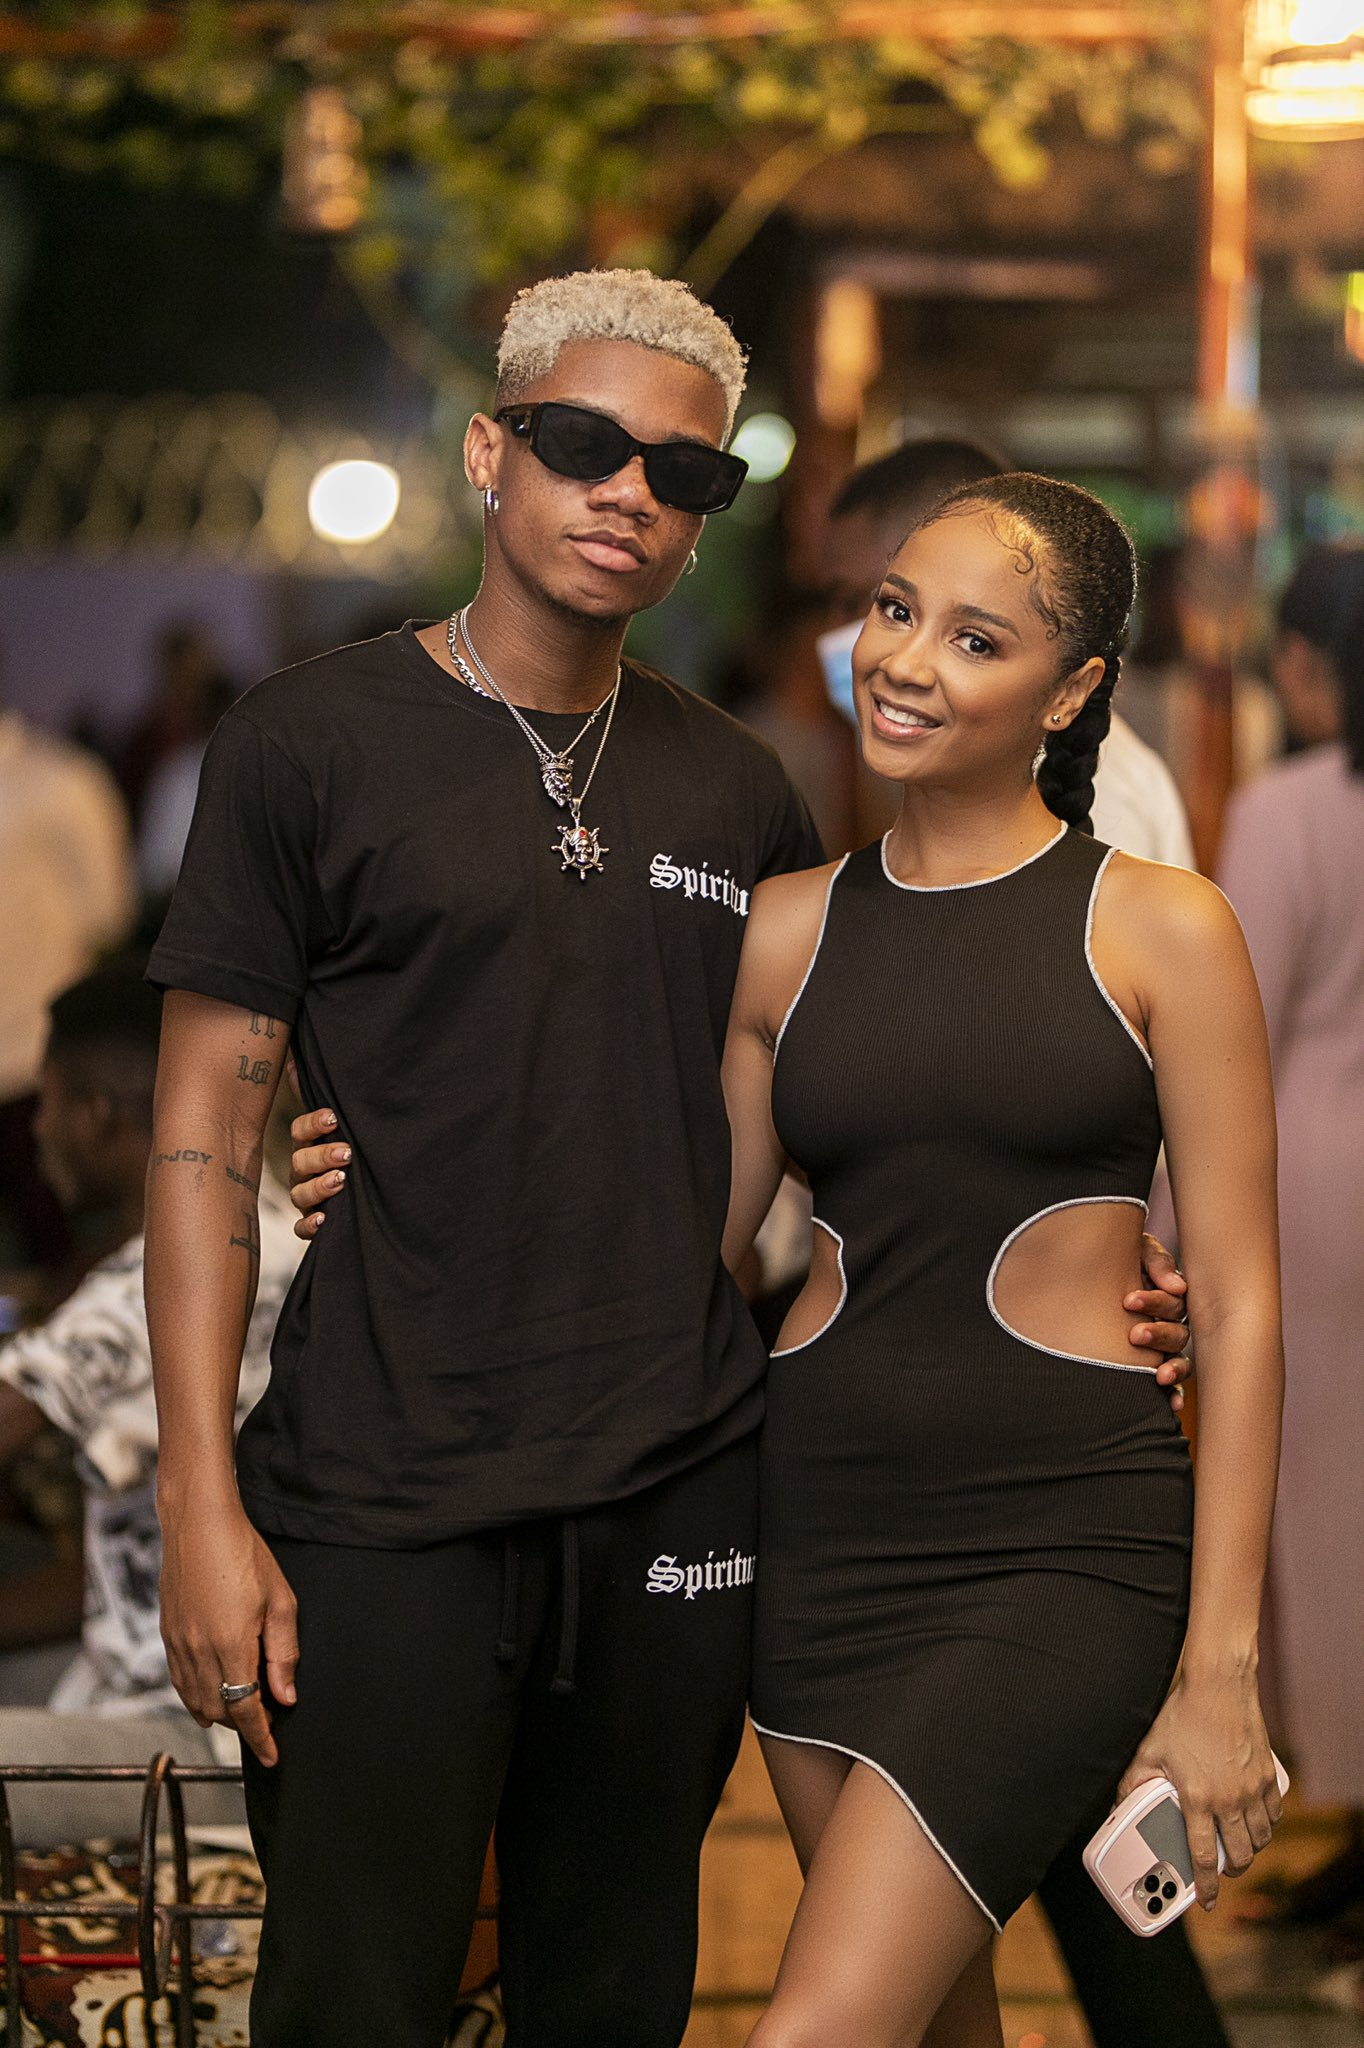 Sister Deborah and Kidi got the internet buzzing with these pictures (Pictures)